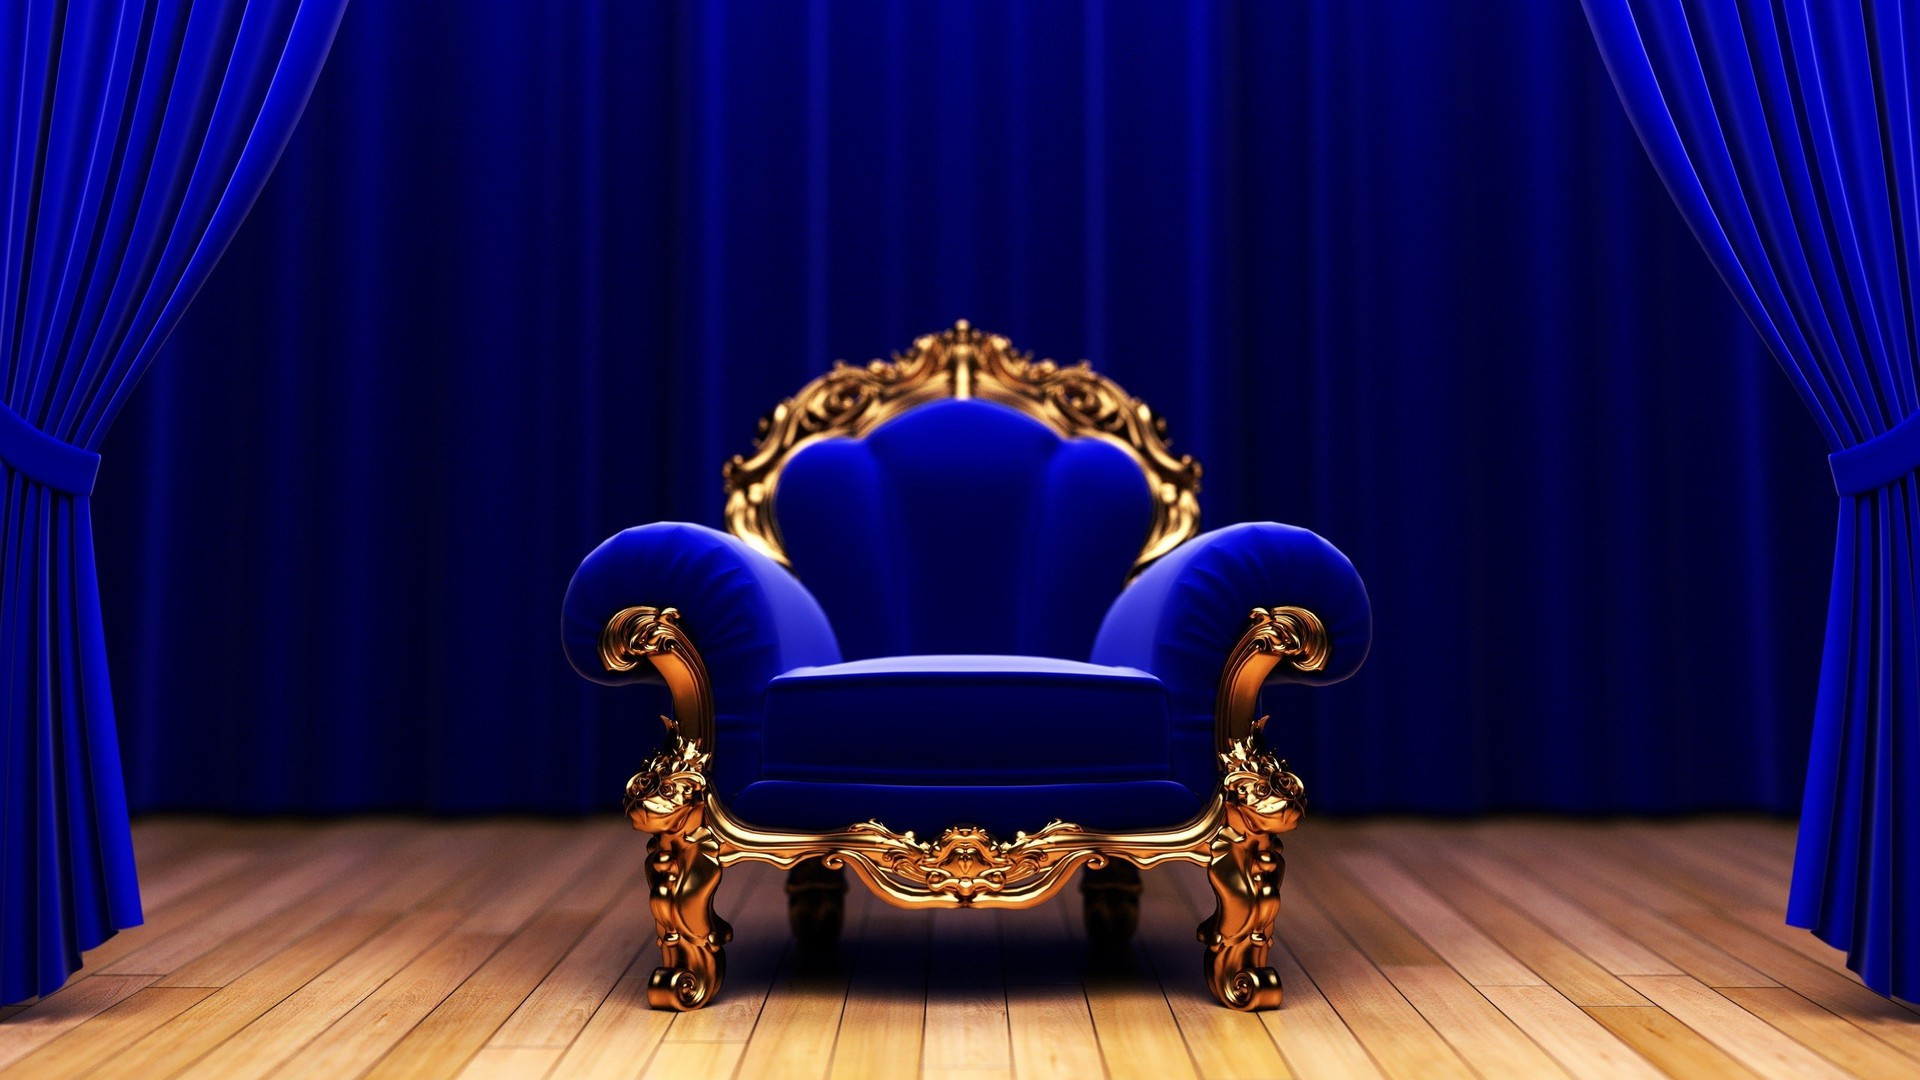 Blue Couch Studio King Armchair Wallpaper Allwallpaper